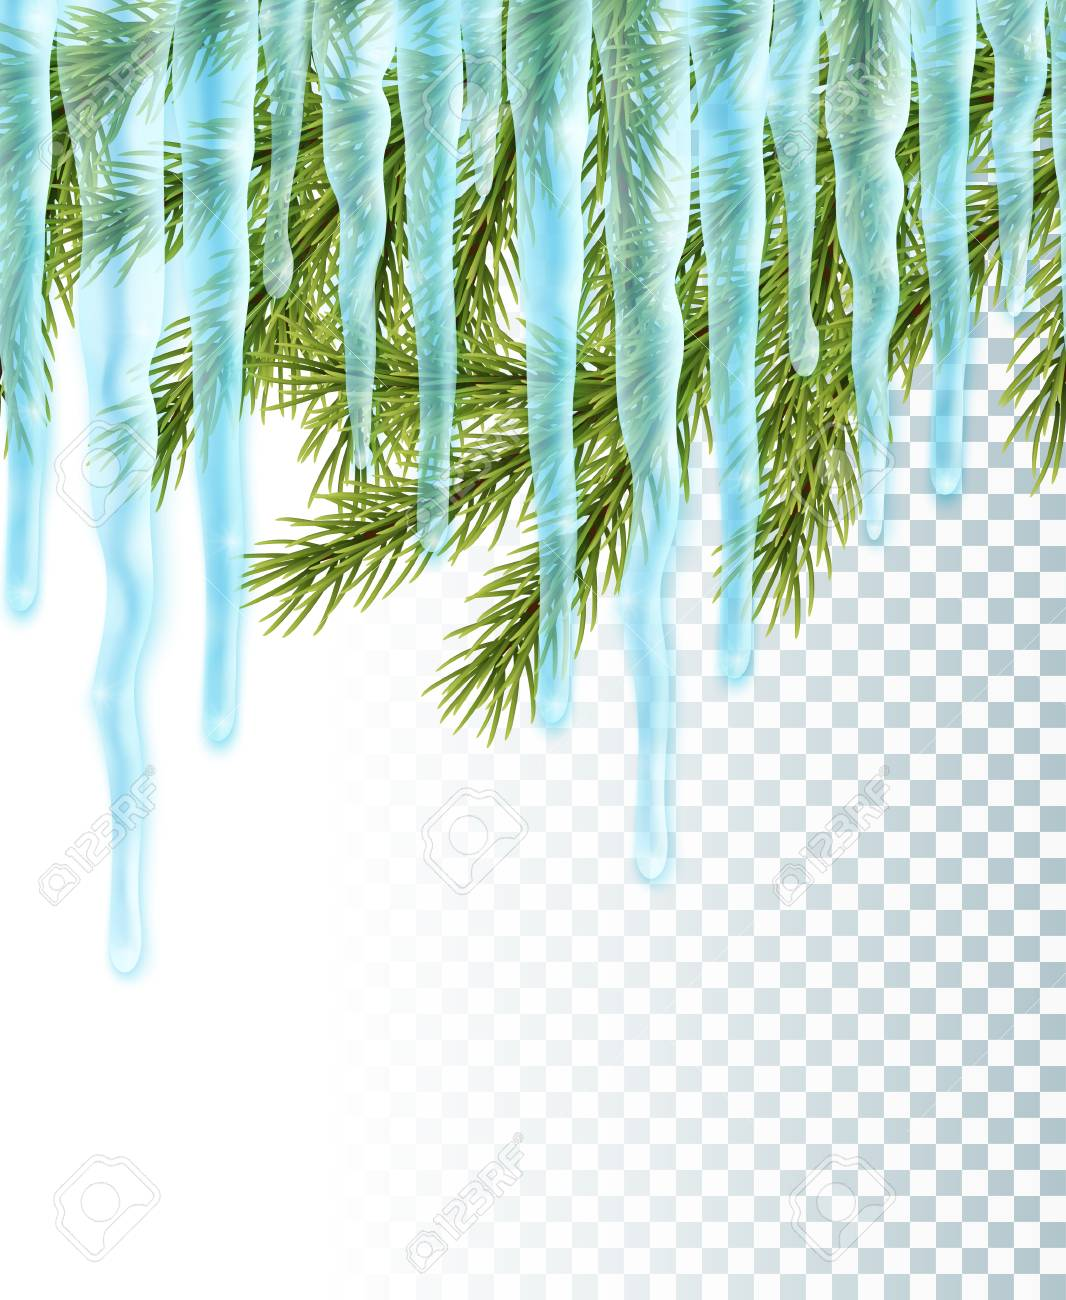 Realistic Christmas Background With Icicles And Pine Tree, Seamless ...